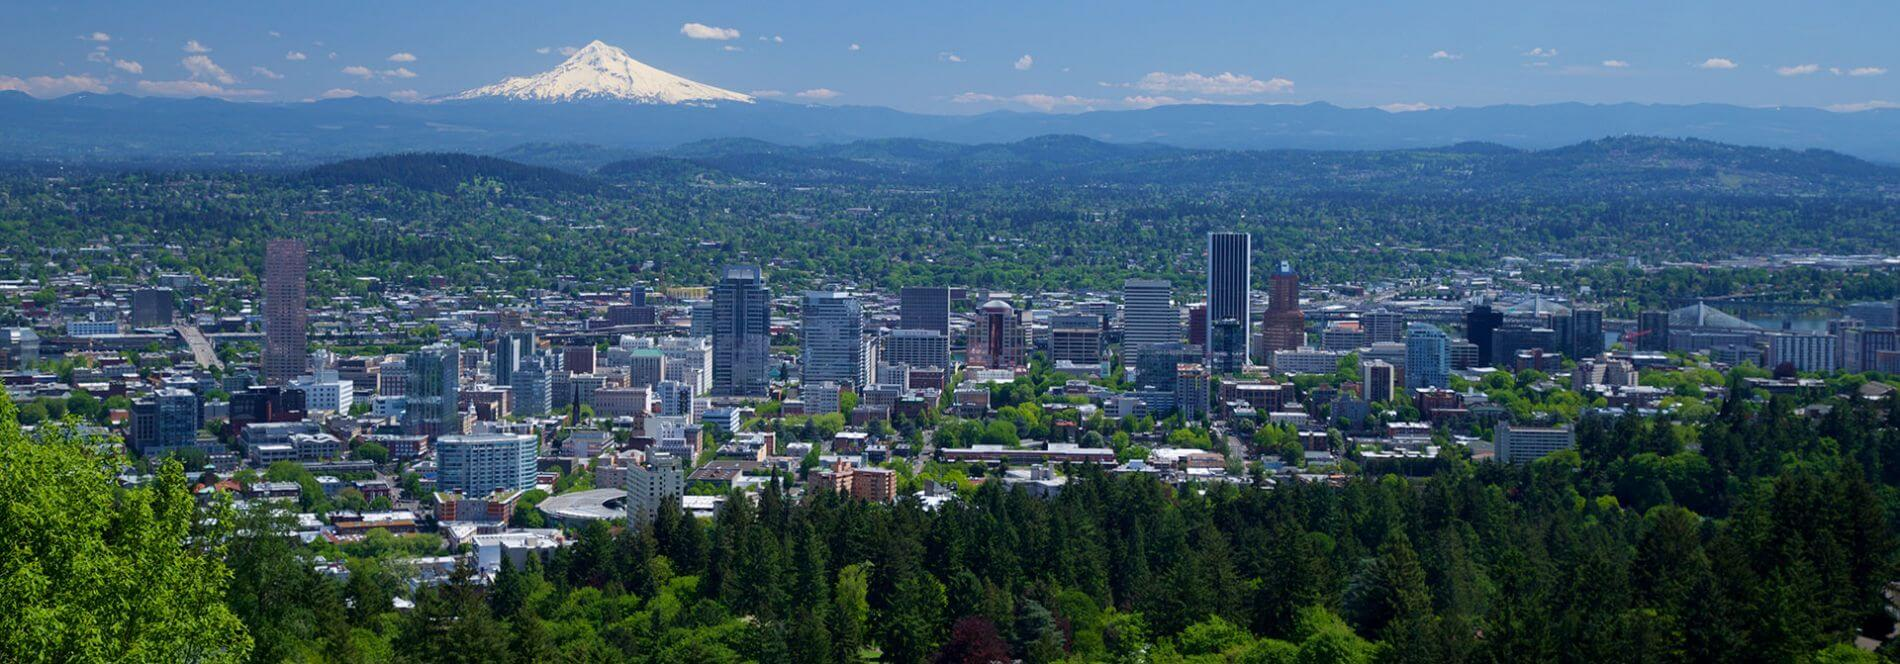 Panoramic photo of Portland, OR.